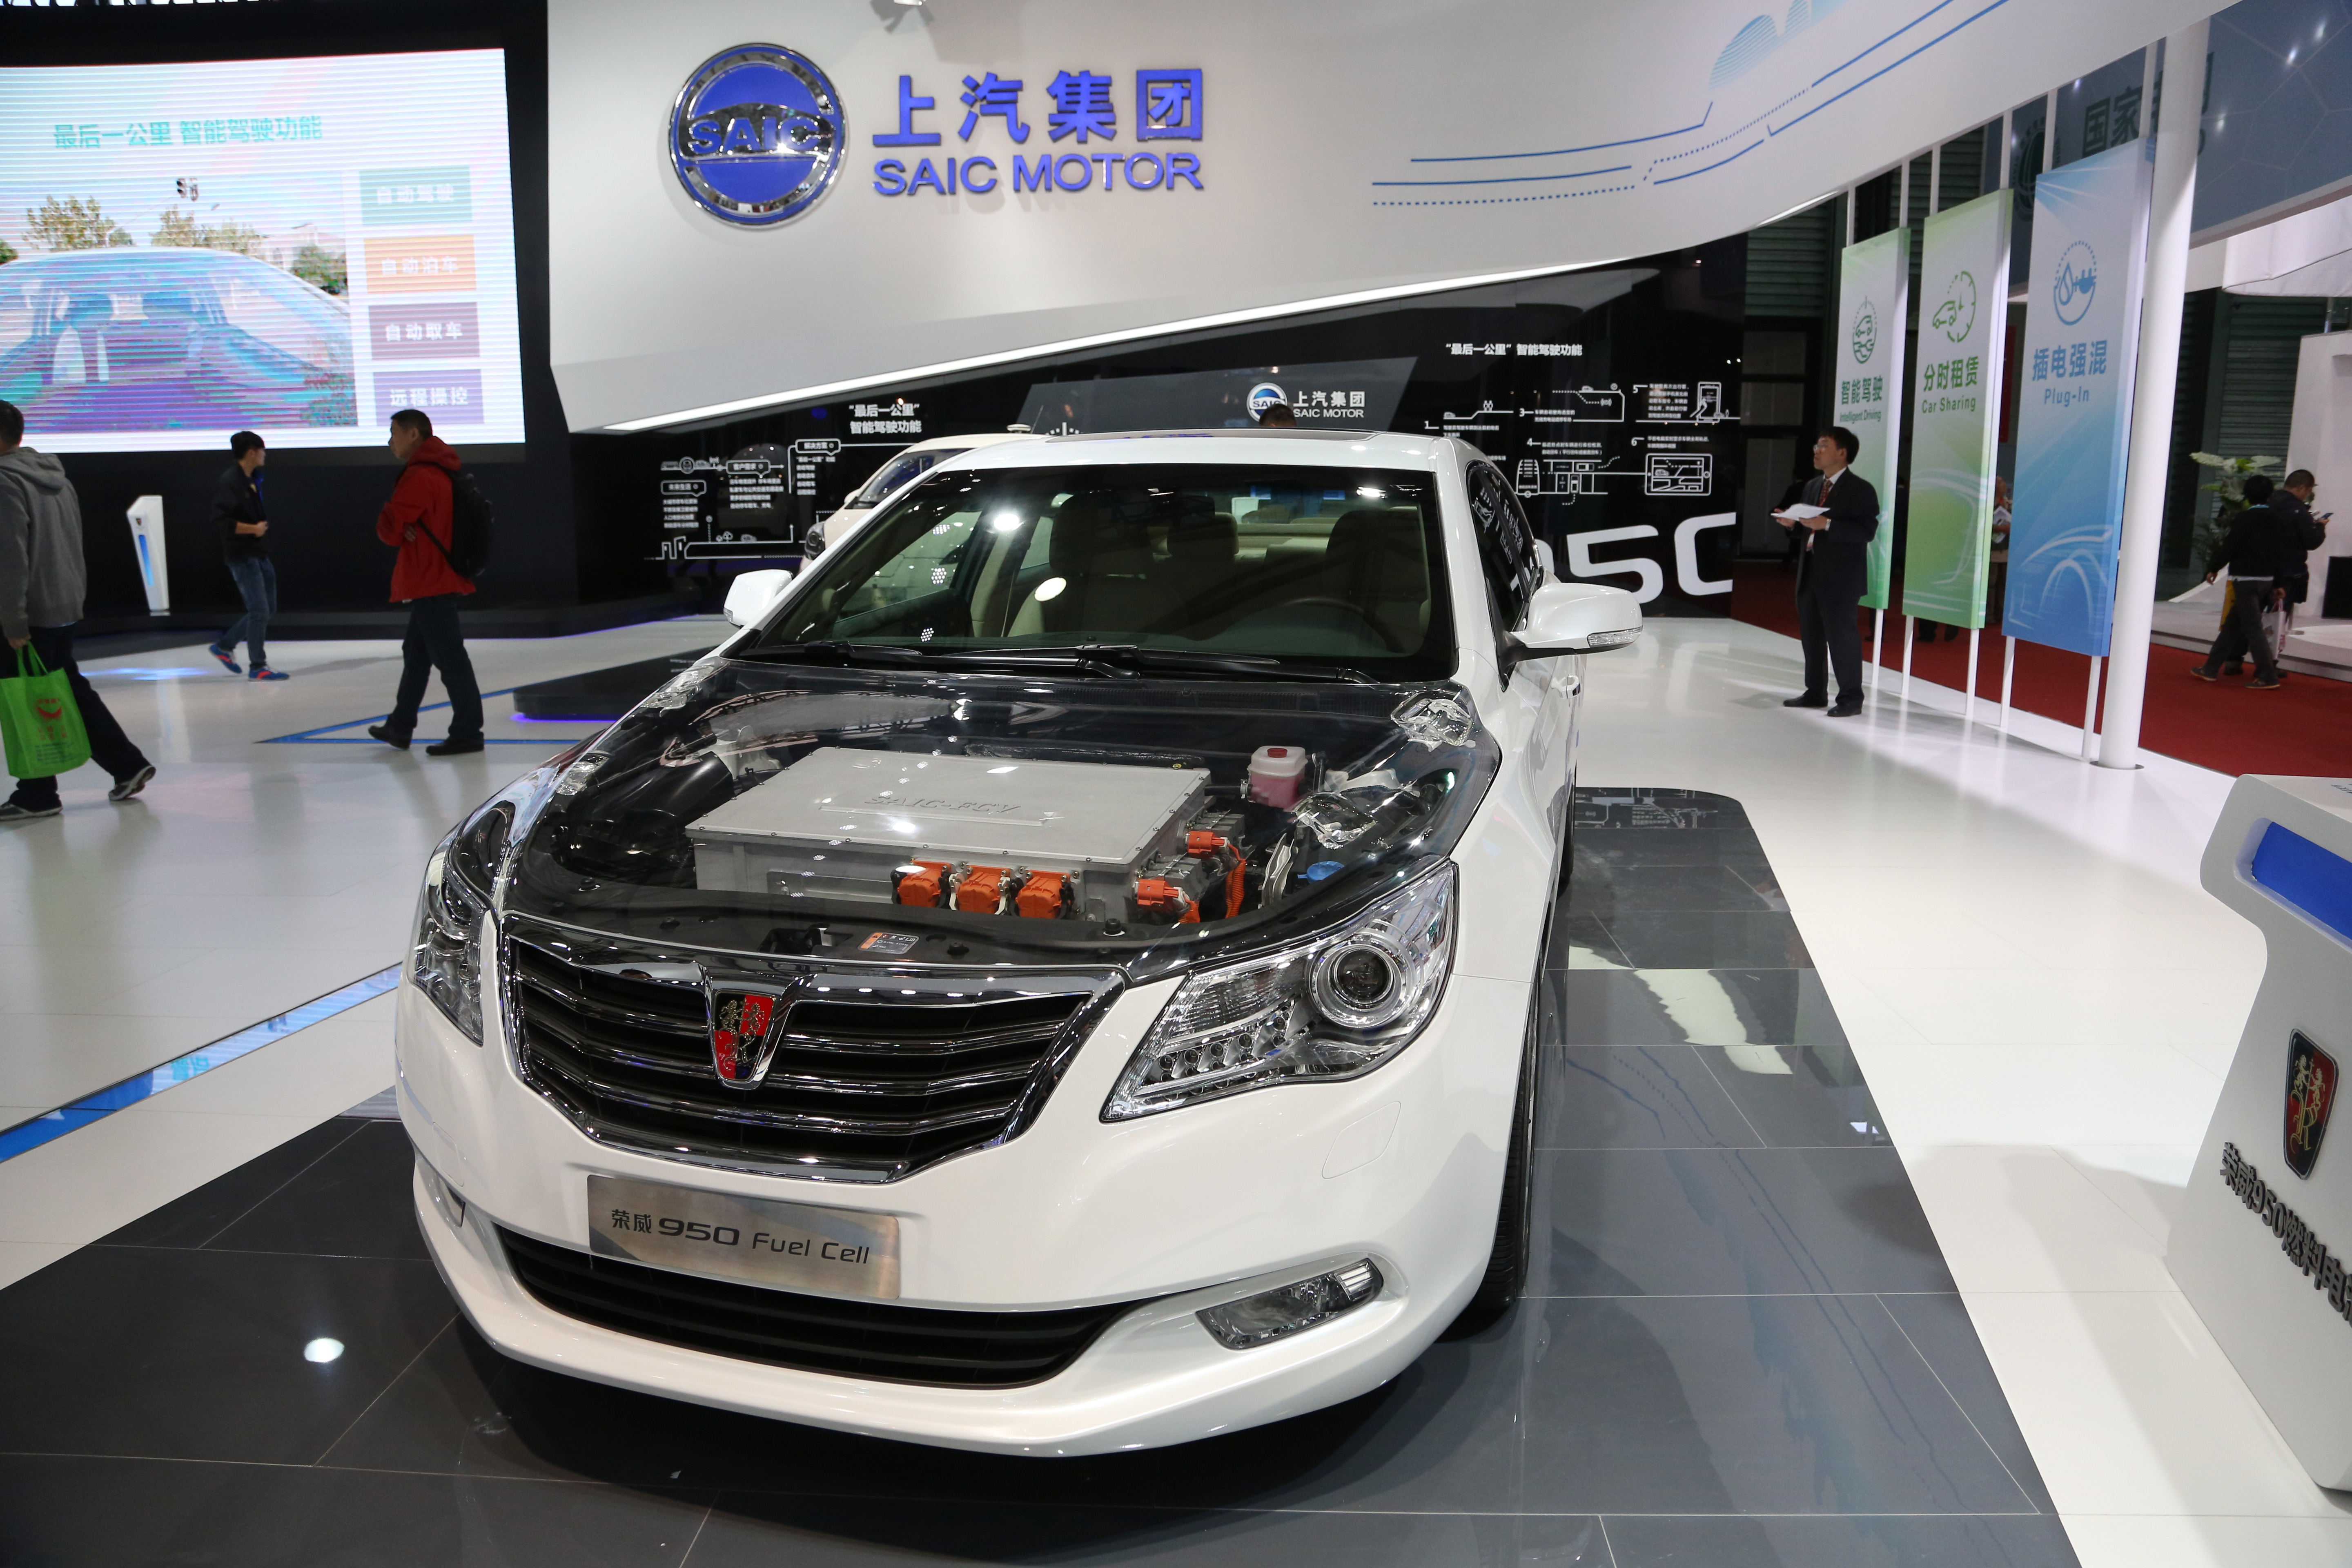 Build A Car >> Gm S 5 Billion Plan To Build A Car For Brazil China India